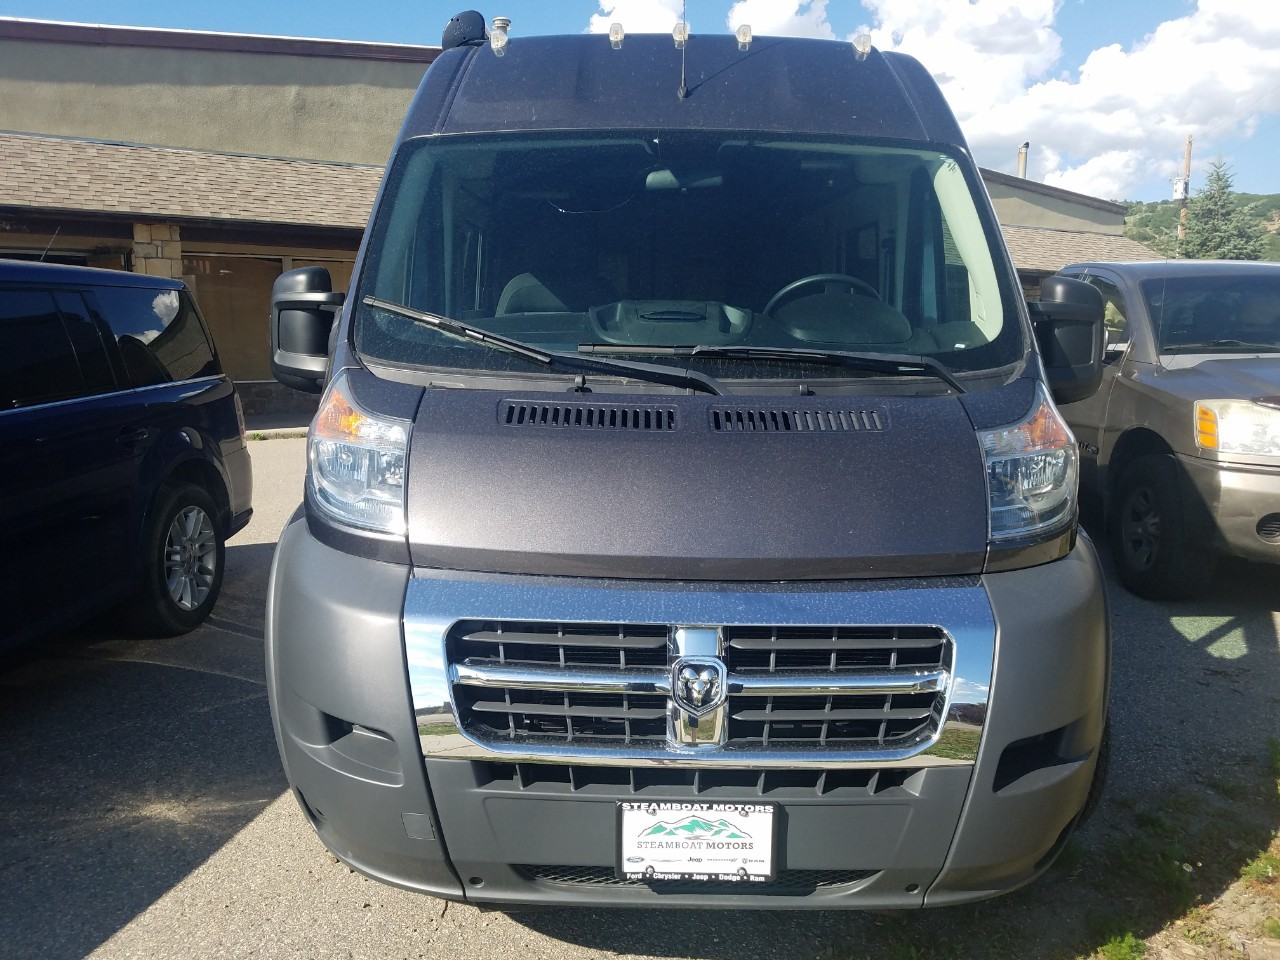 Ram Promaster For Sale - Dodge RVs - RV Trader